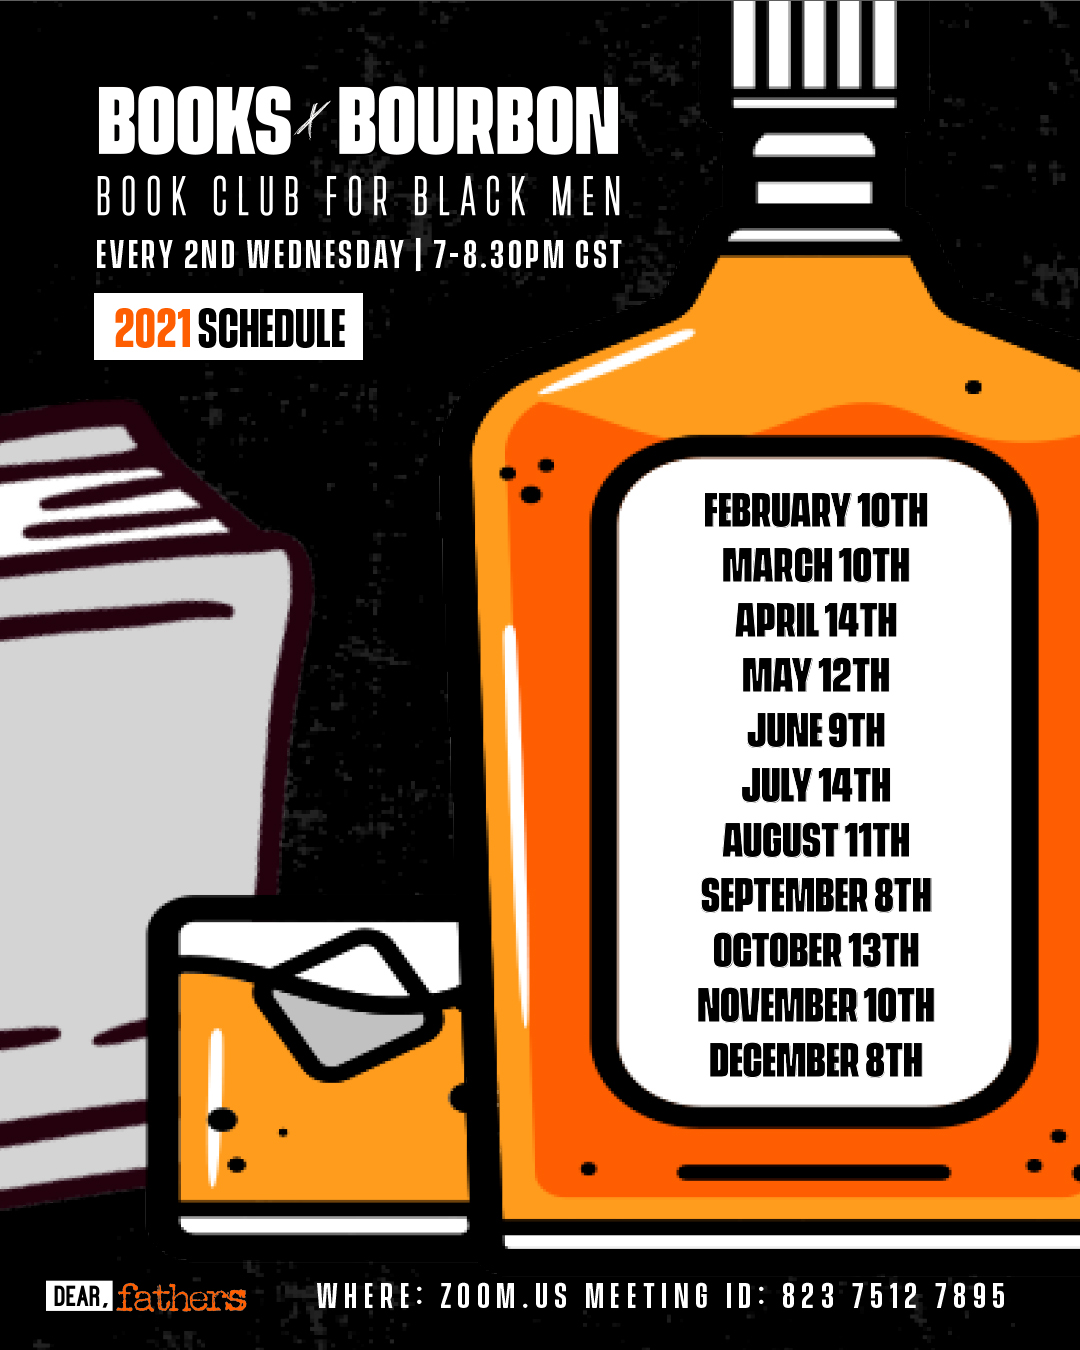 BOOKS AND BOURBON 2021 SCHEDULE